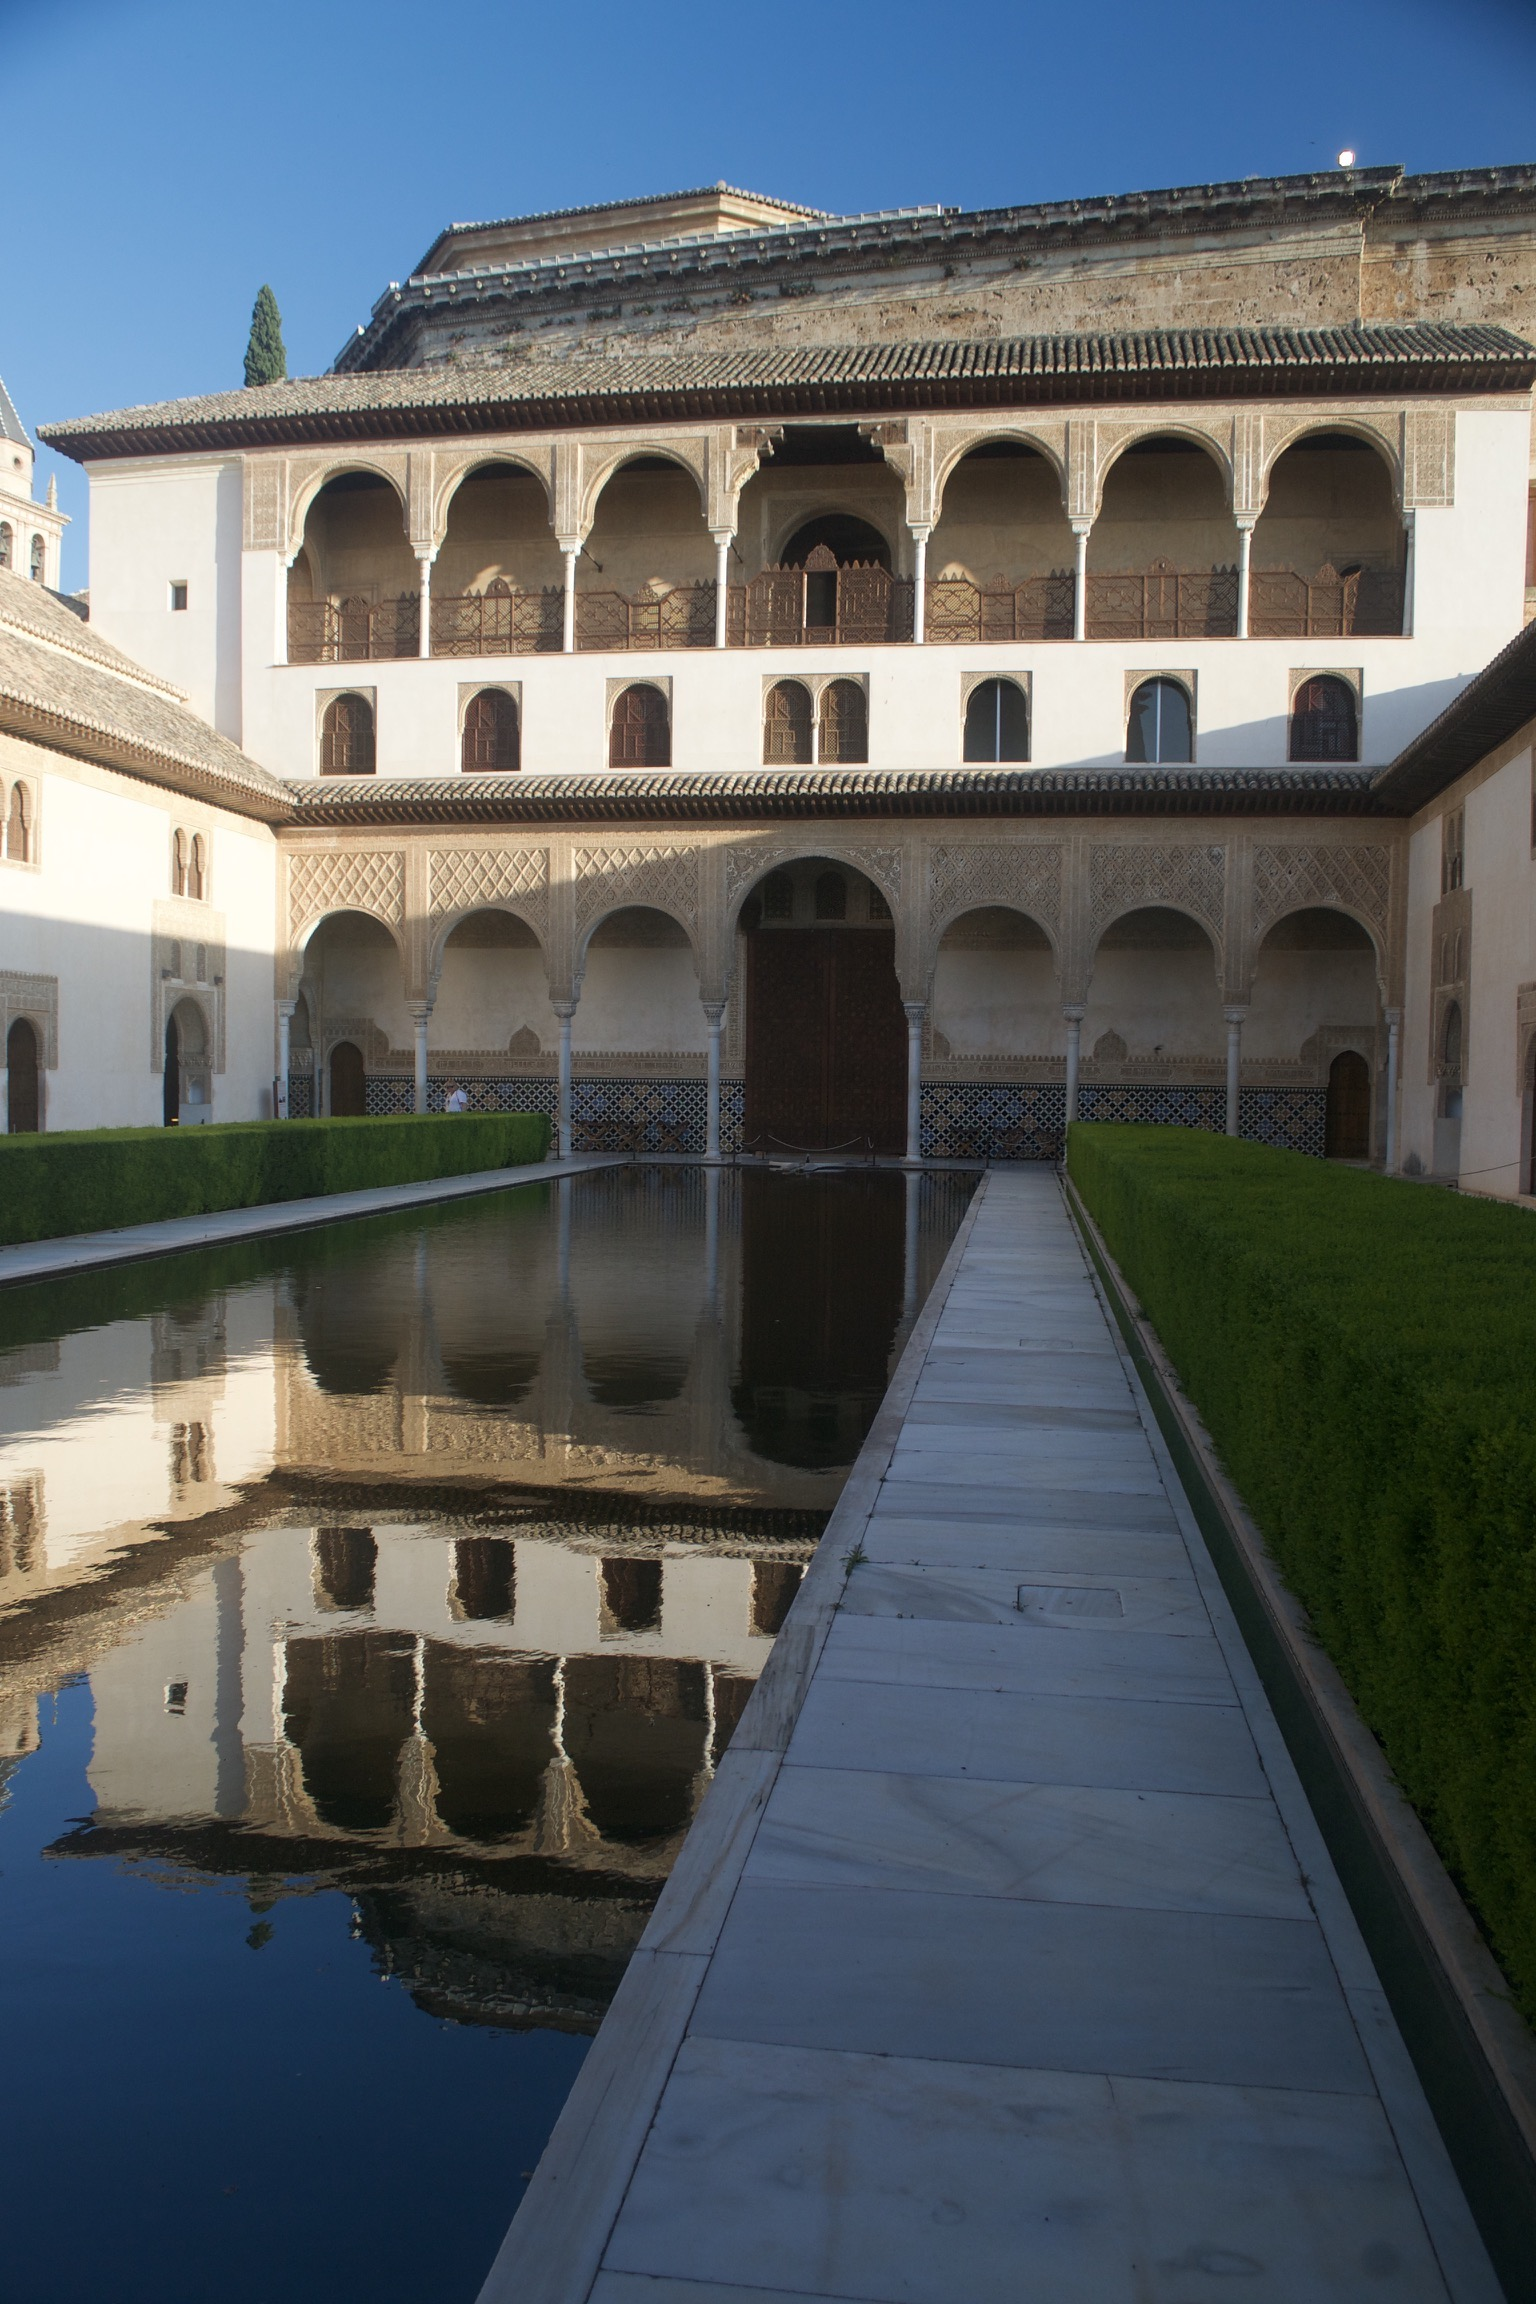 A still reflecting pool mirrors a surrounding two-storied building.